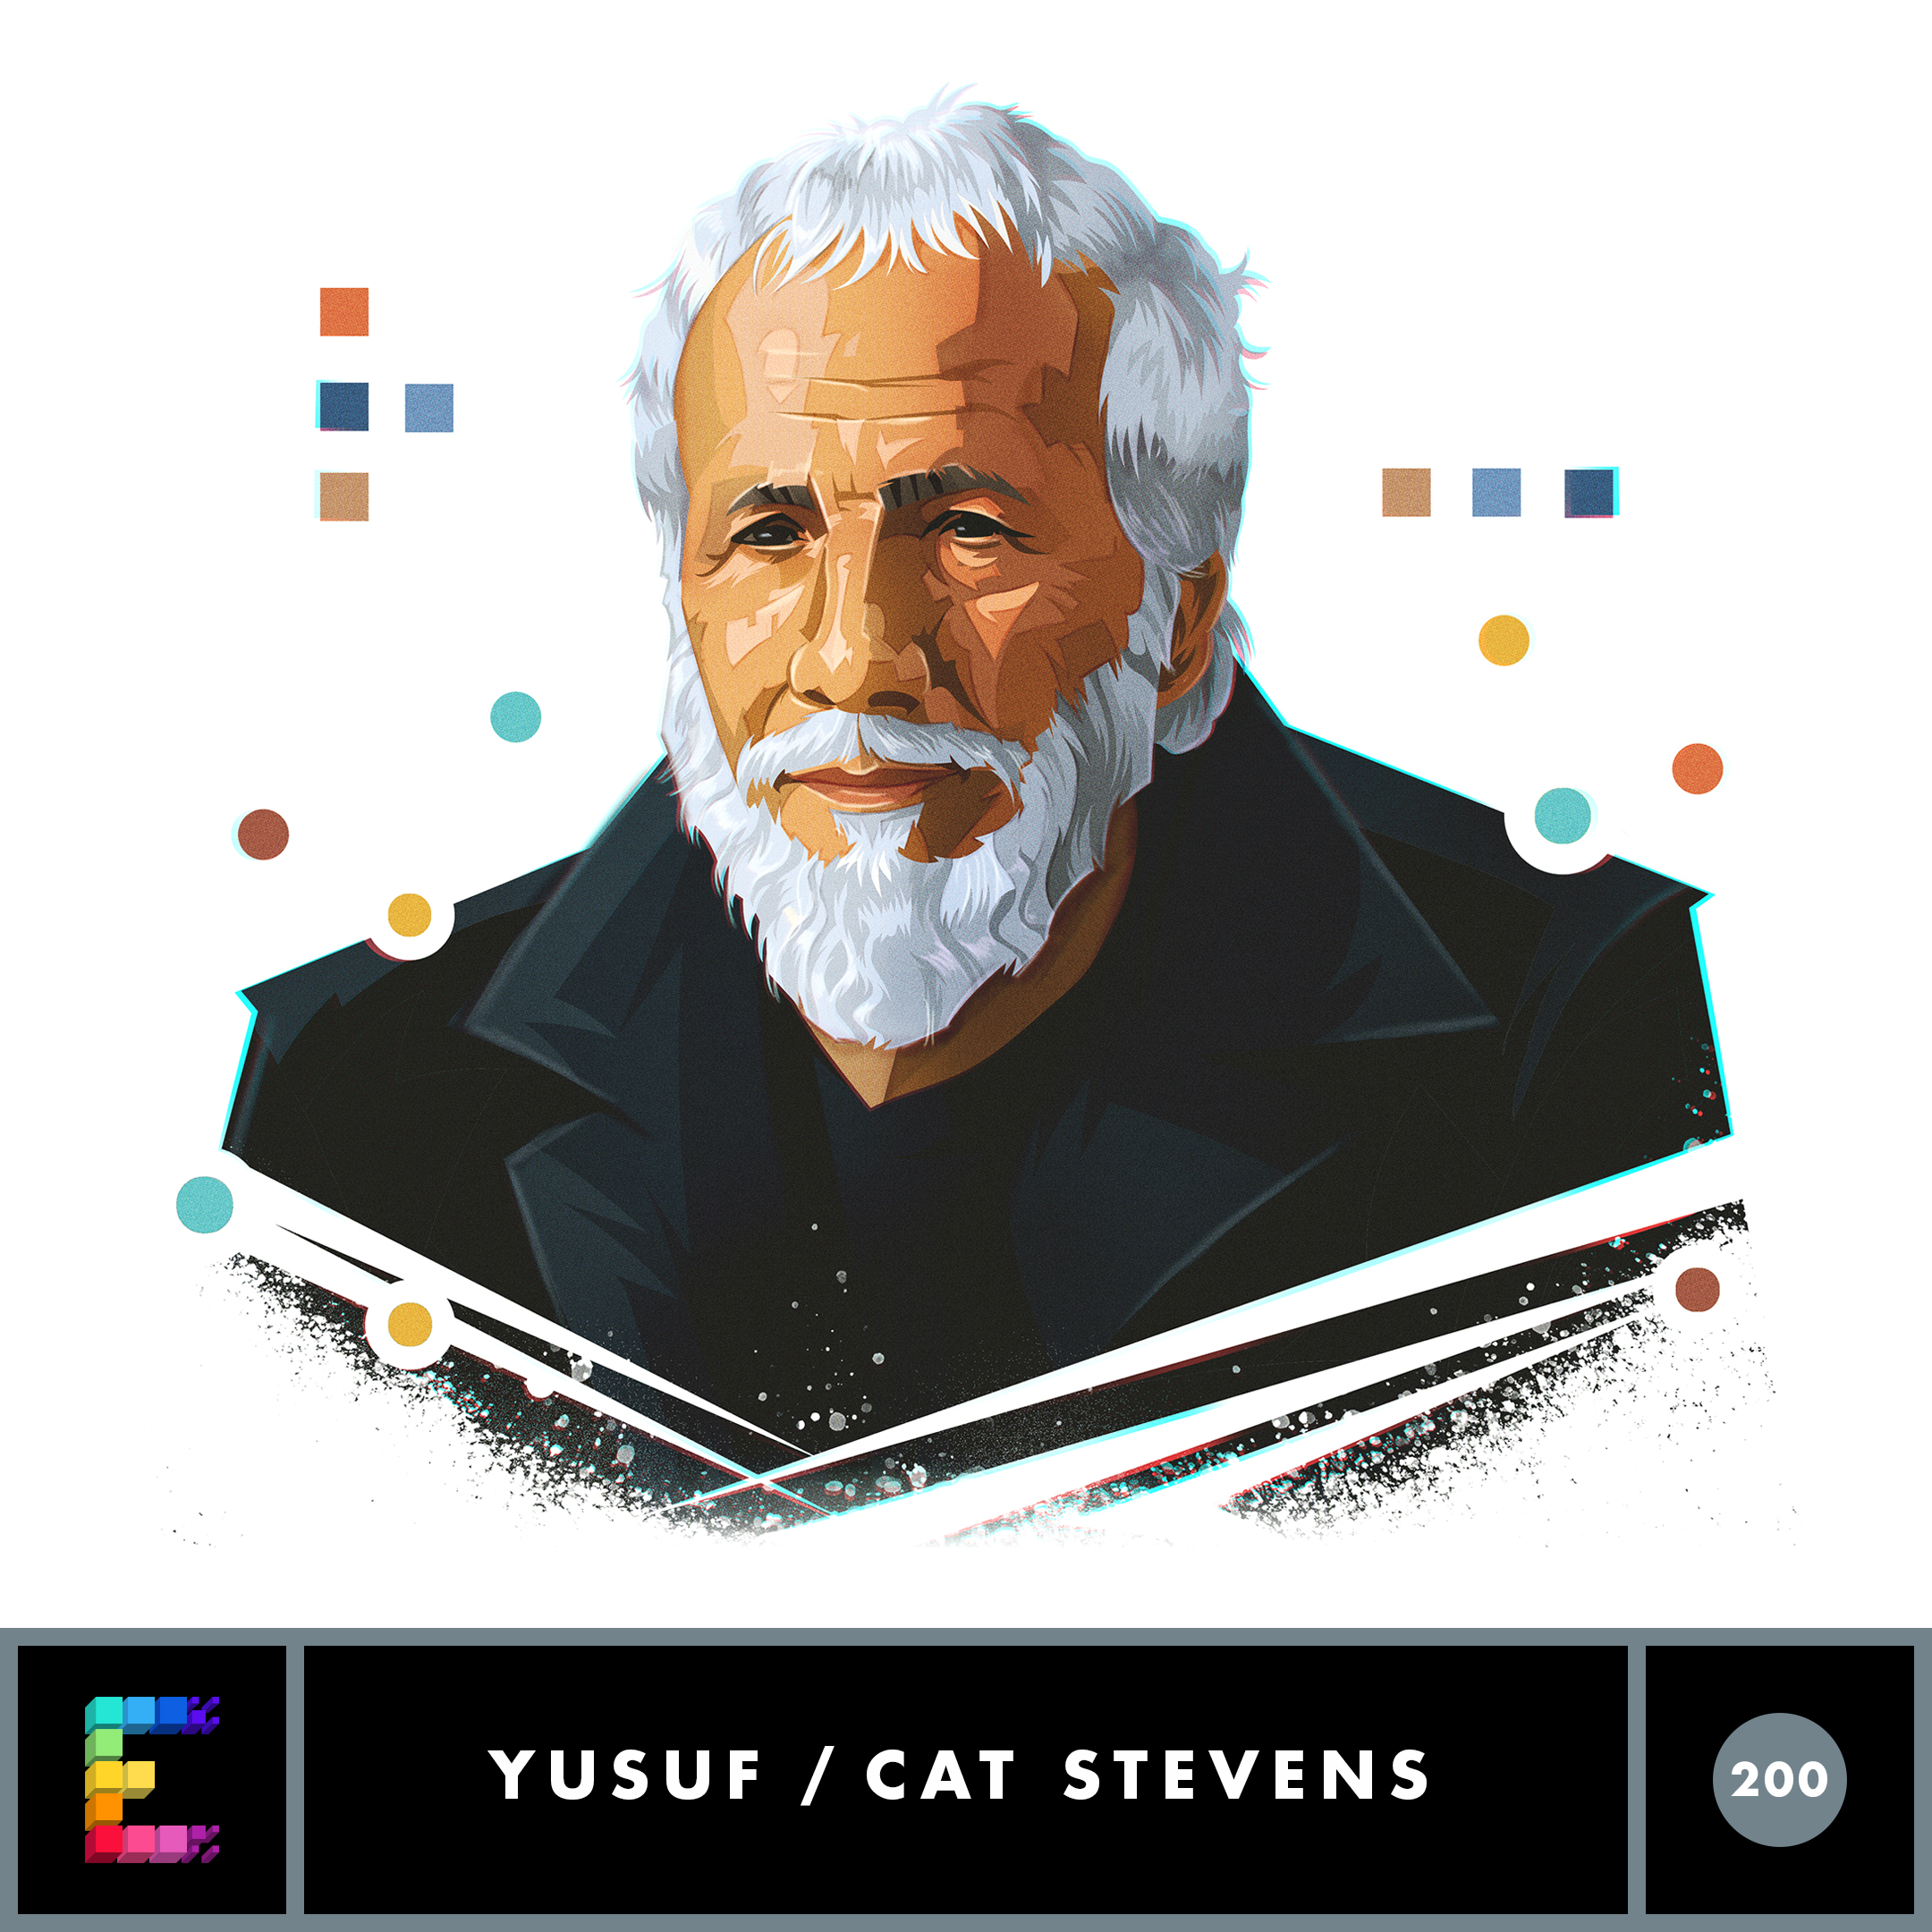 Yusuf / Cat Stevens - Father and Son